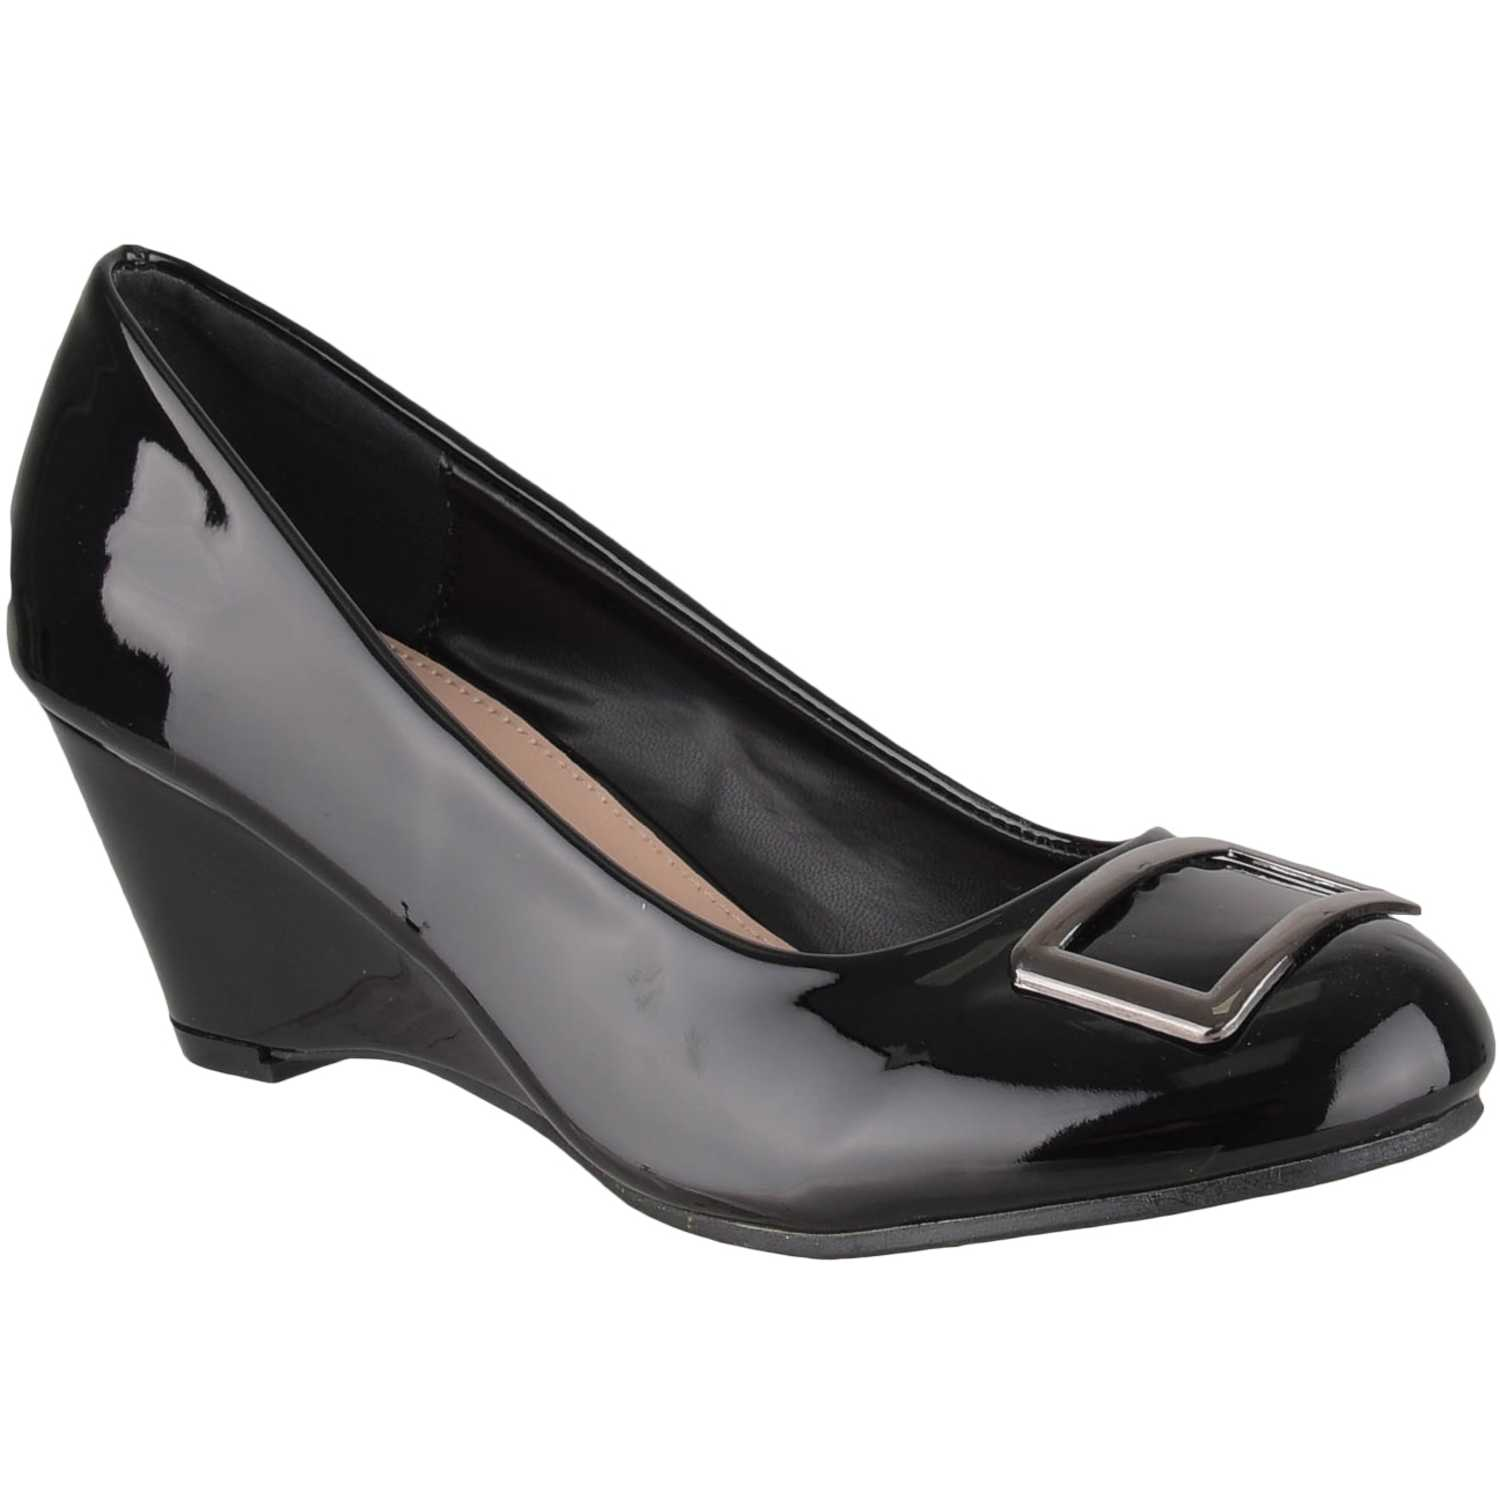 Platanitos cw 187 Negro Estiletos y Pumps